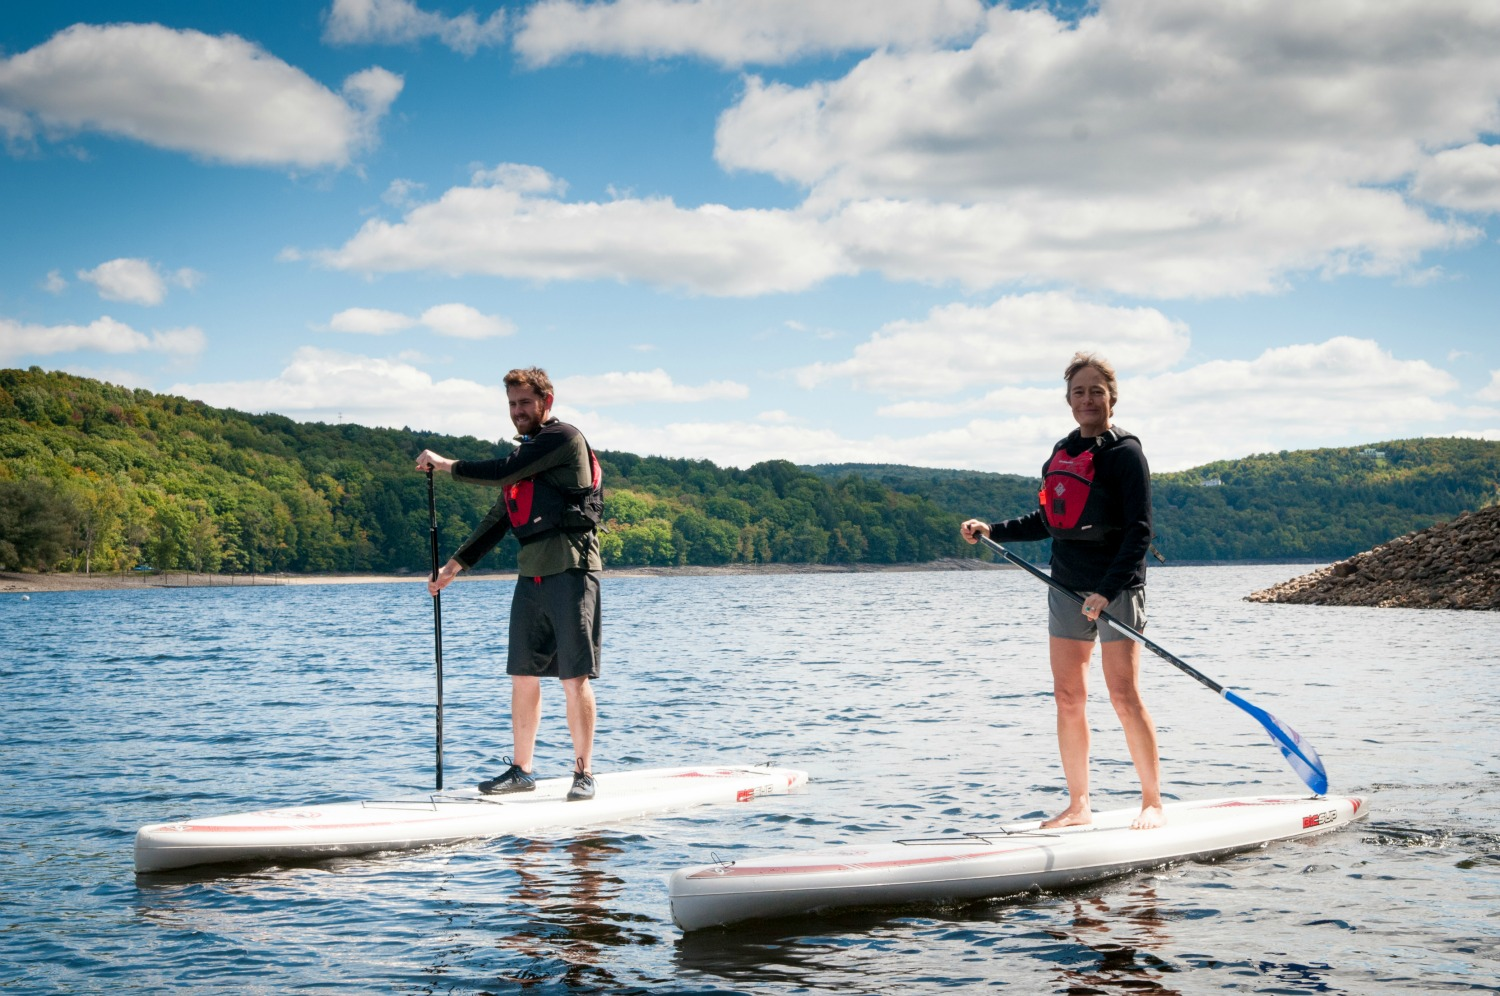 Introduction to Stand Up Paddle Boarding - Section II